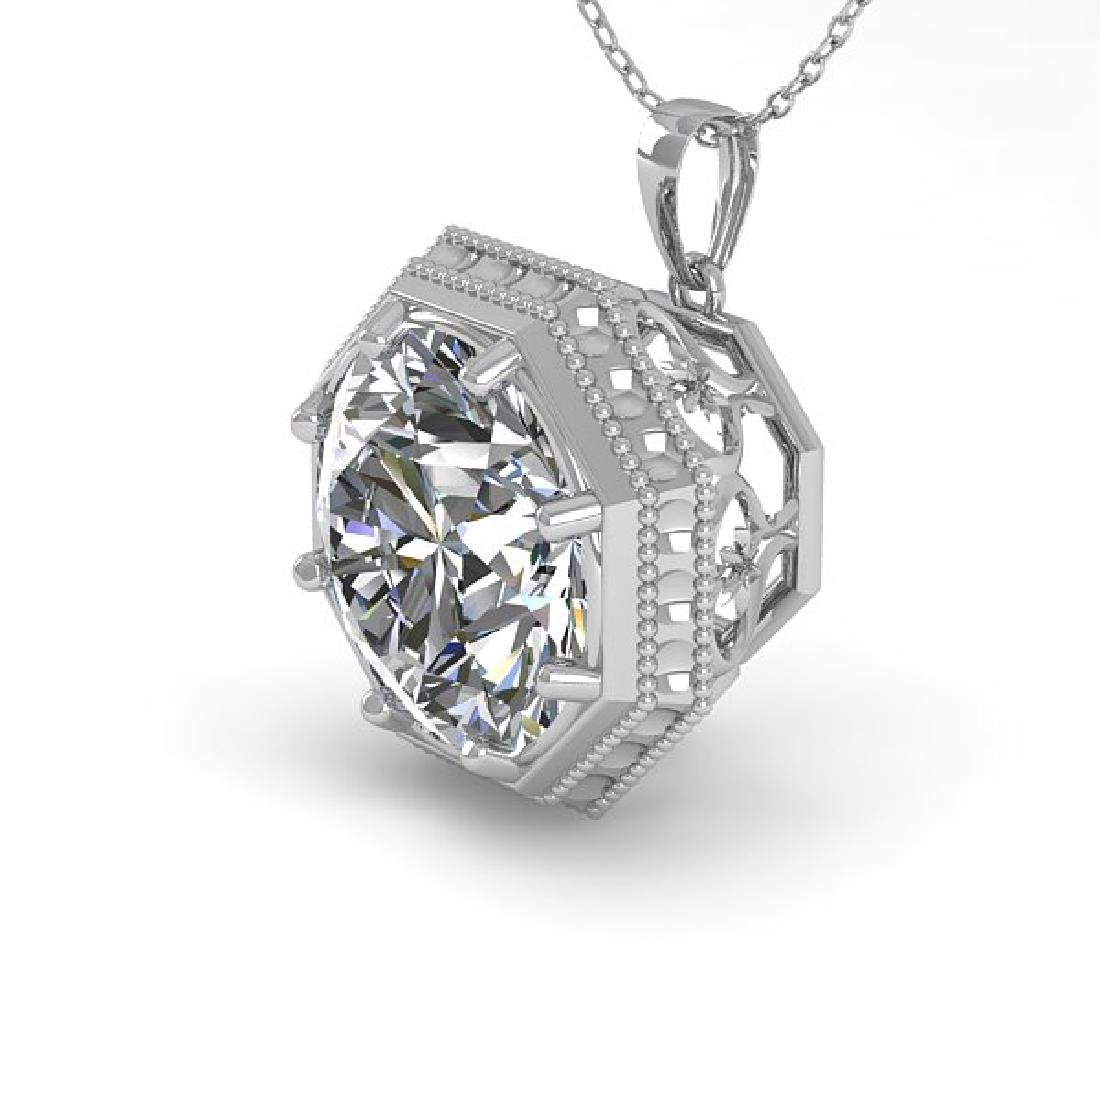 1.50 CTW VS/SI Diamond Solitaire Necklace 14K White